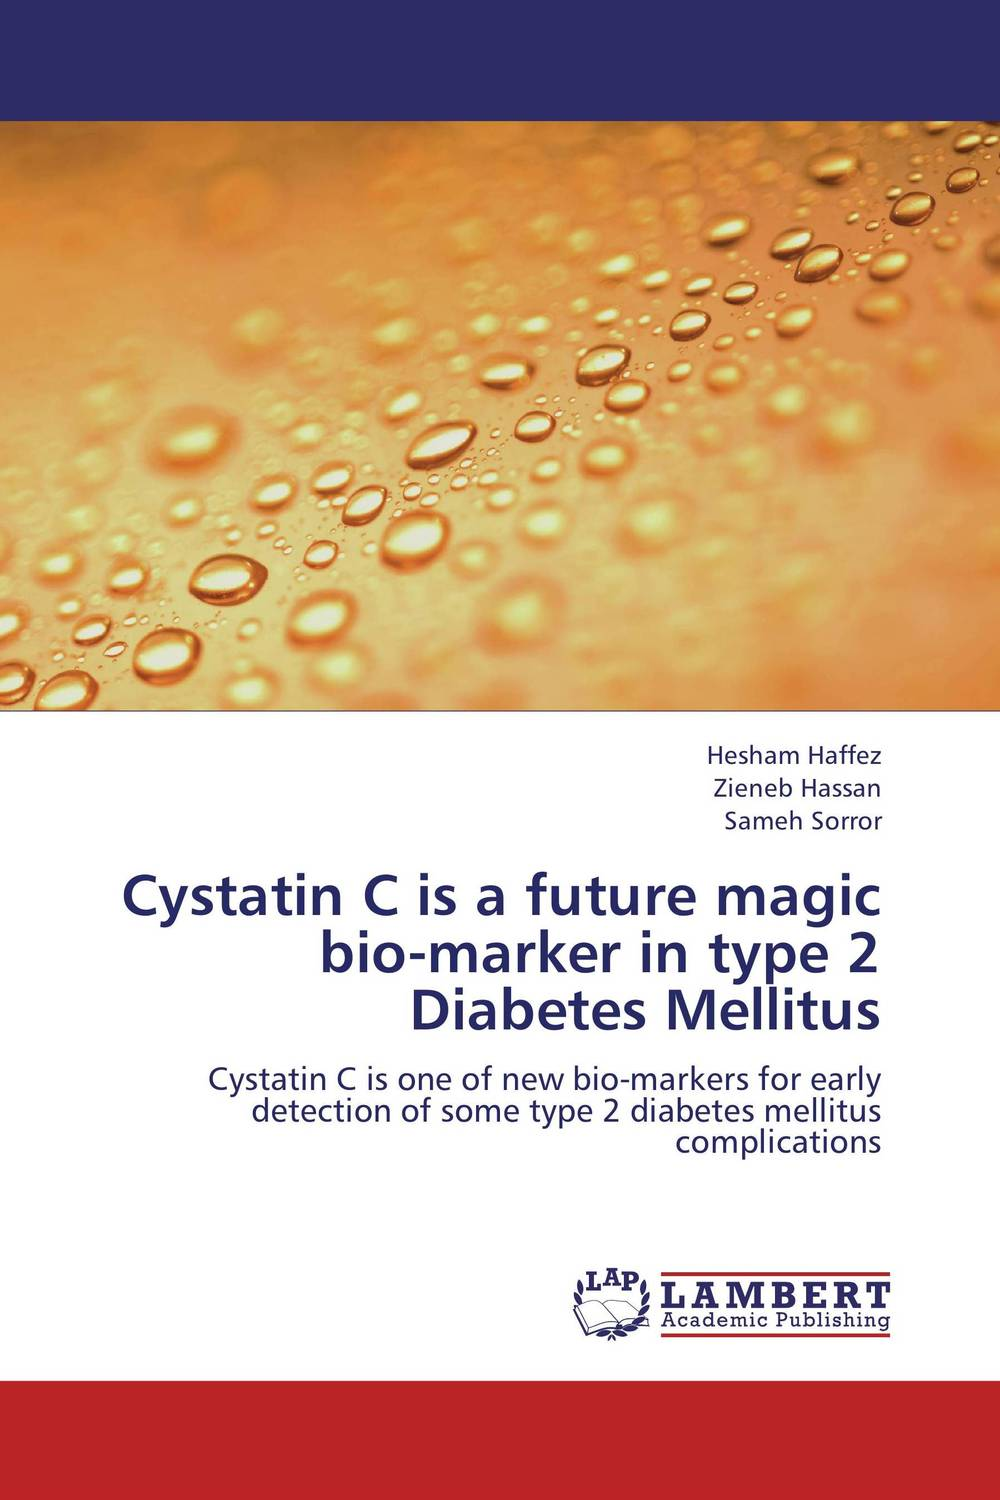 Cystatin C is a future magic bio-marker in type 2 Diabetes Mellitus sadat khattab usama abdul raouf and tsutomu kodaki bio ethanol for future from woody biomass